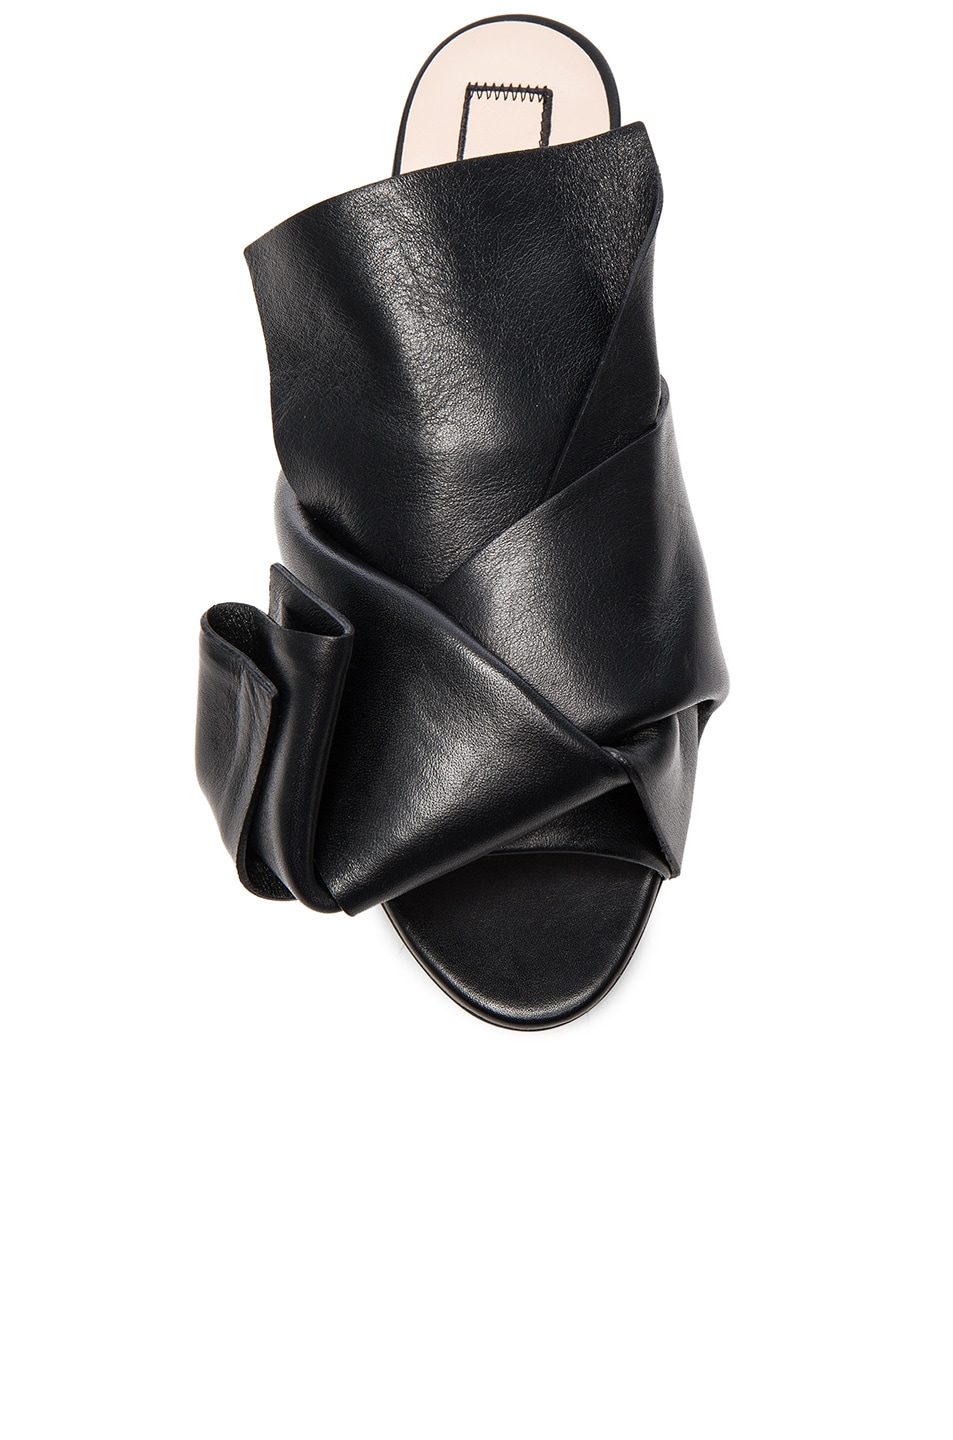 Image 4 of No. 21 Knot Front Leather Sandals in Black Leather